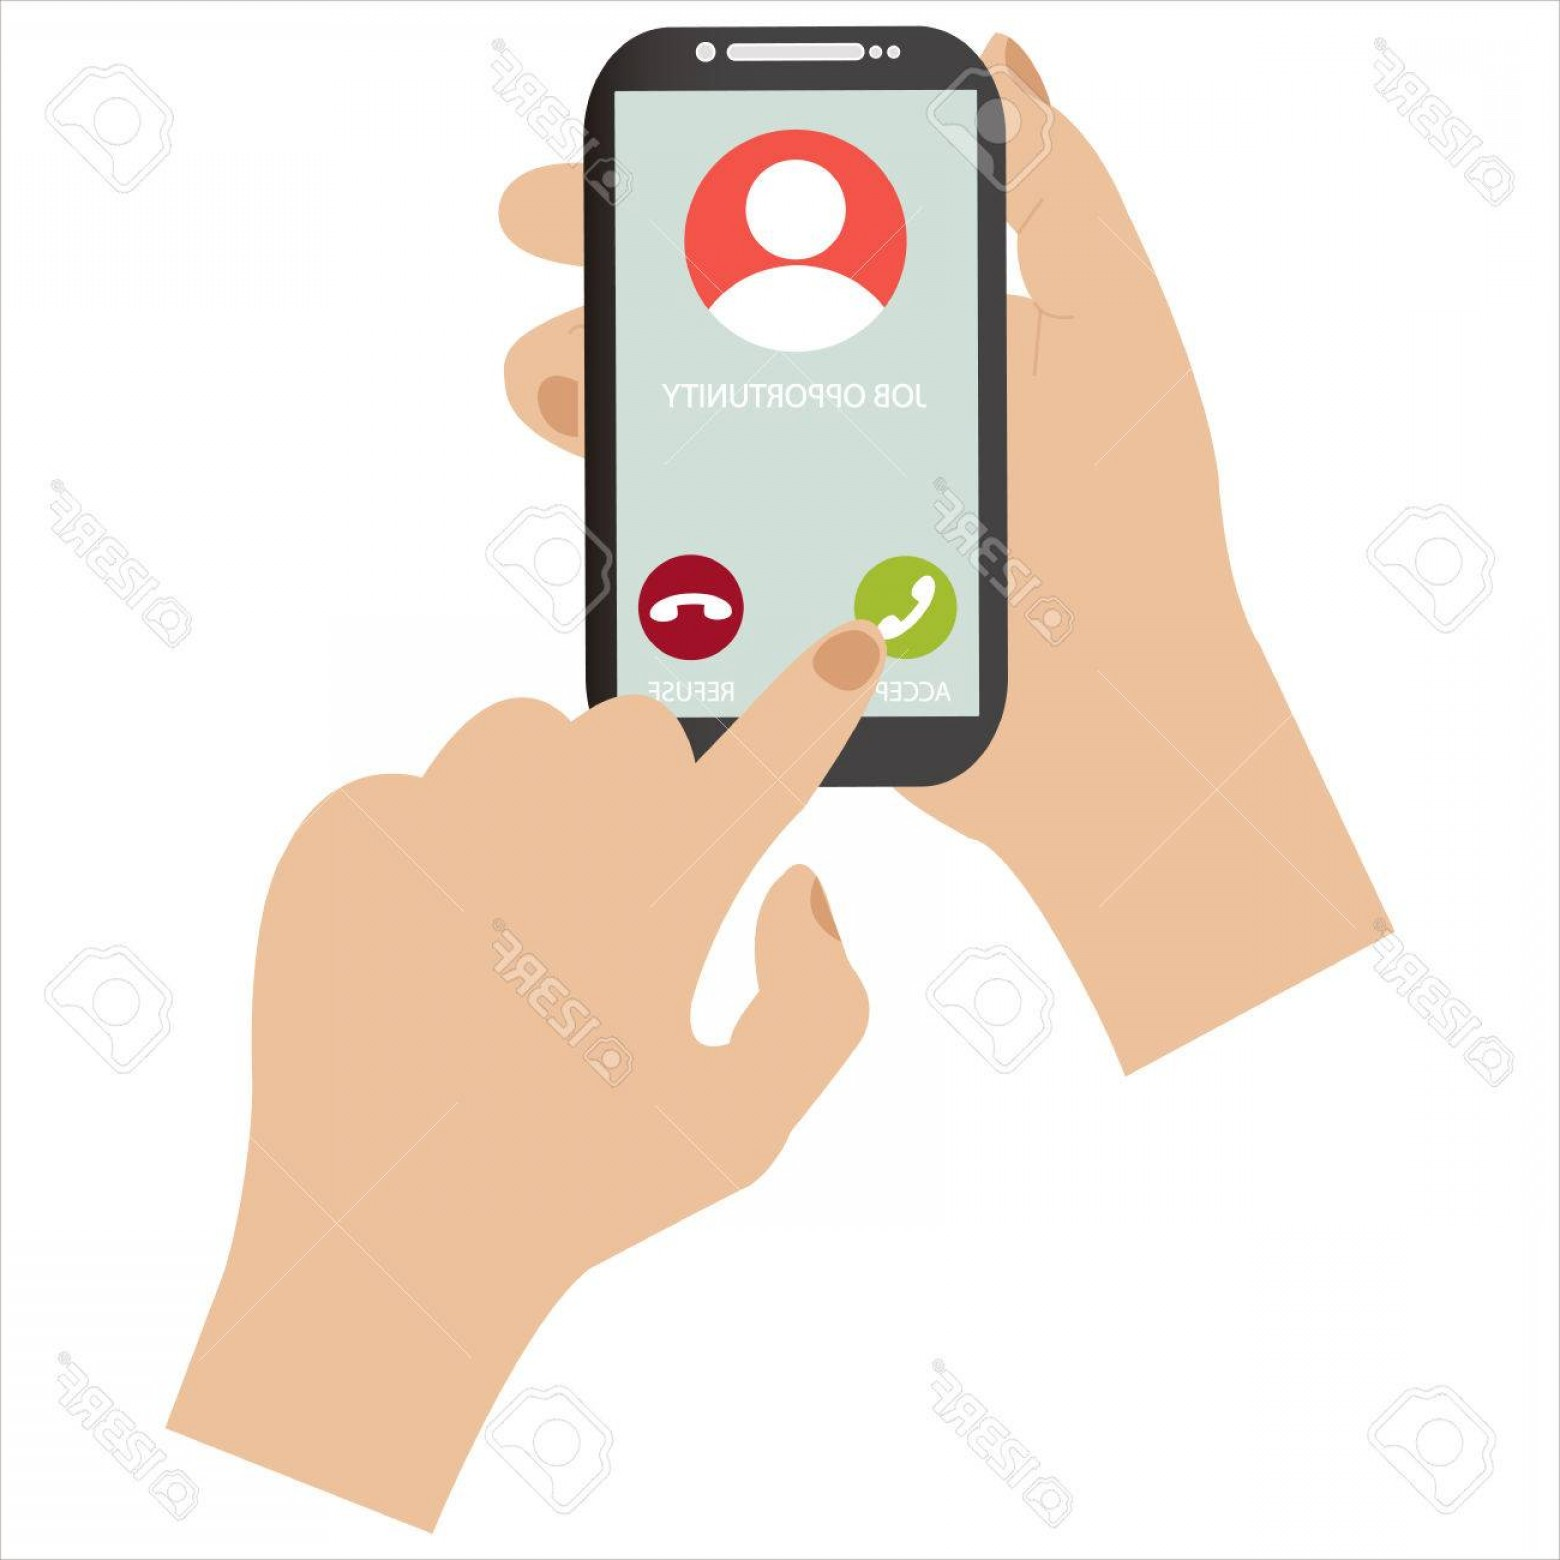 Vector Job Offer: Photostock Vector Receive A Job Offer Through A Phone Call